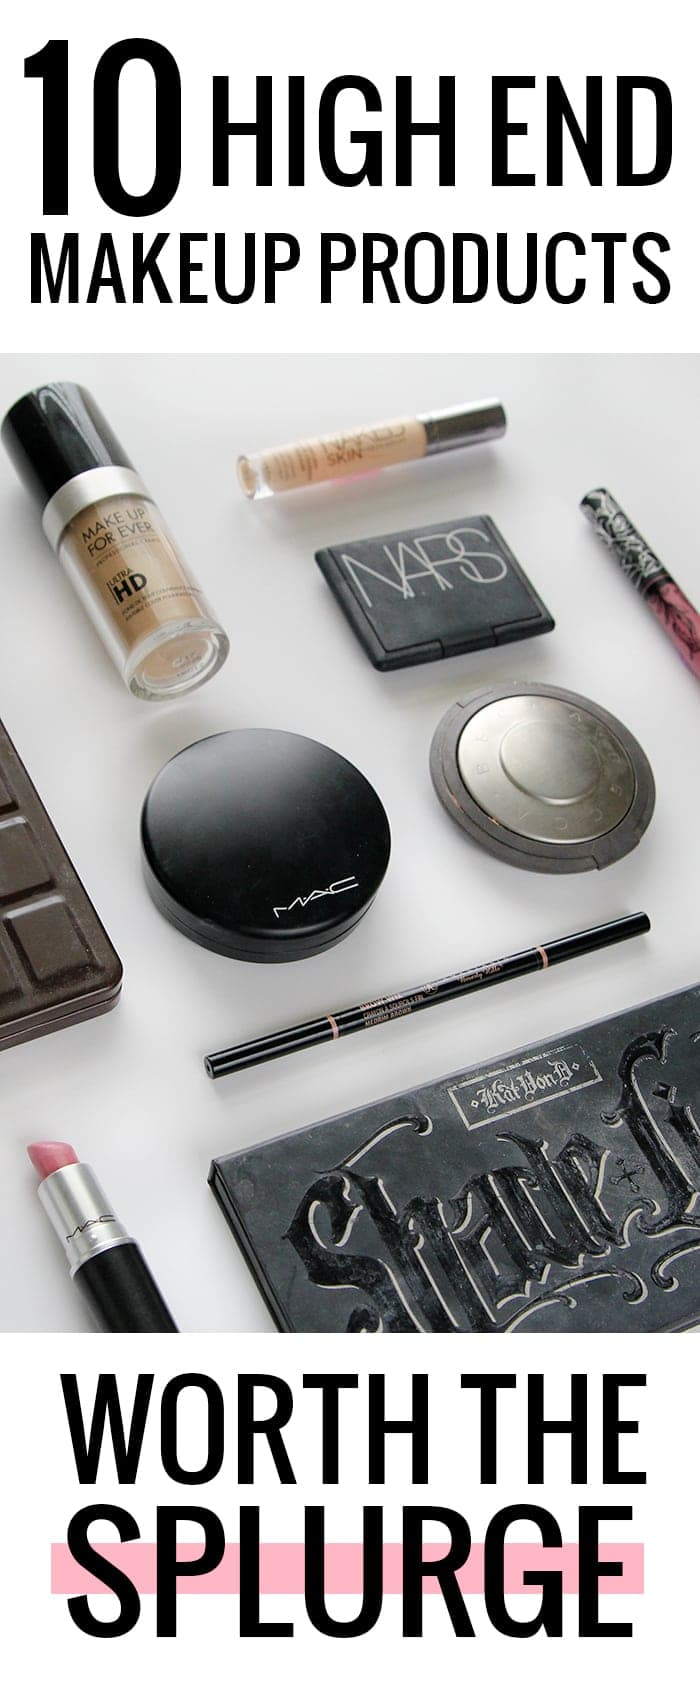 10 high end makeup products worth the splurge. Holy grail high end makeup!